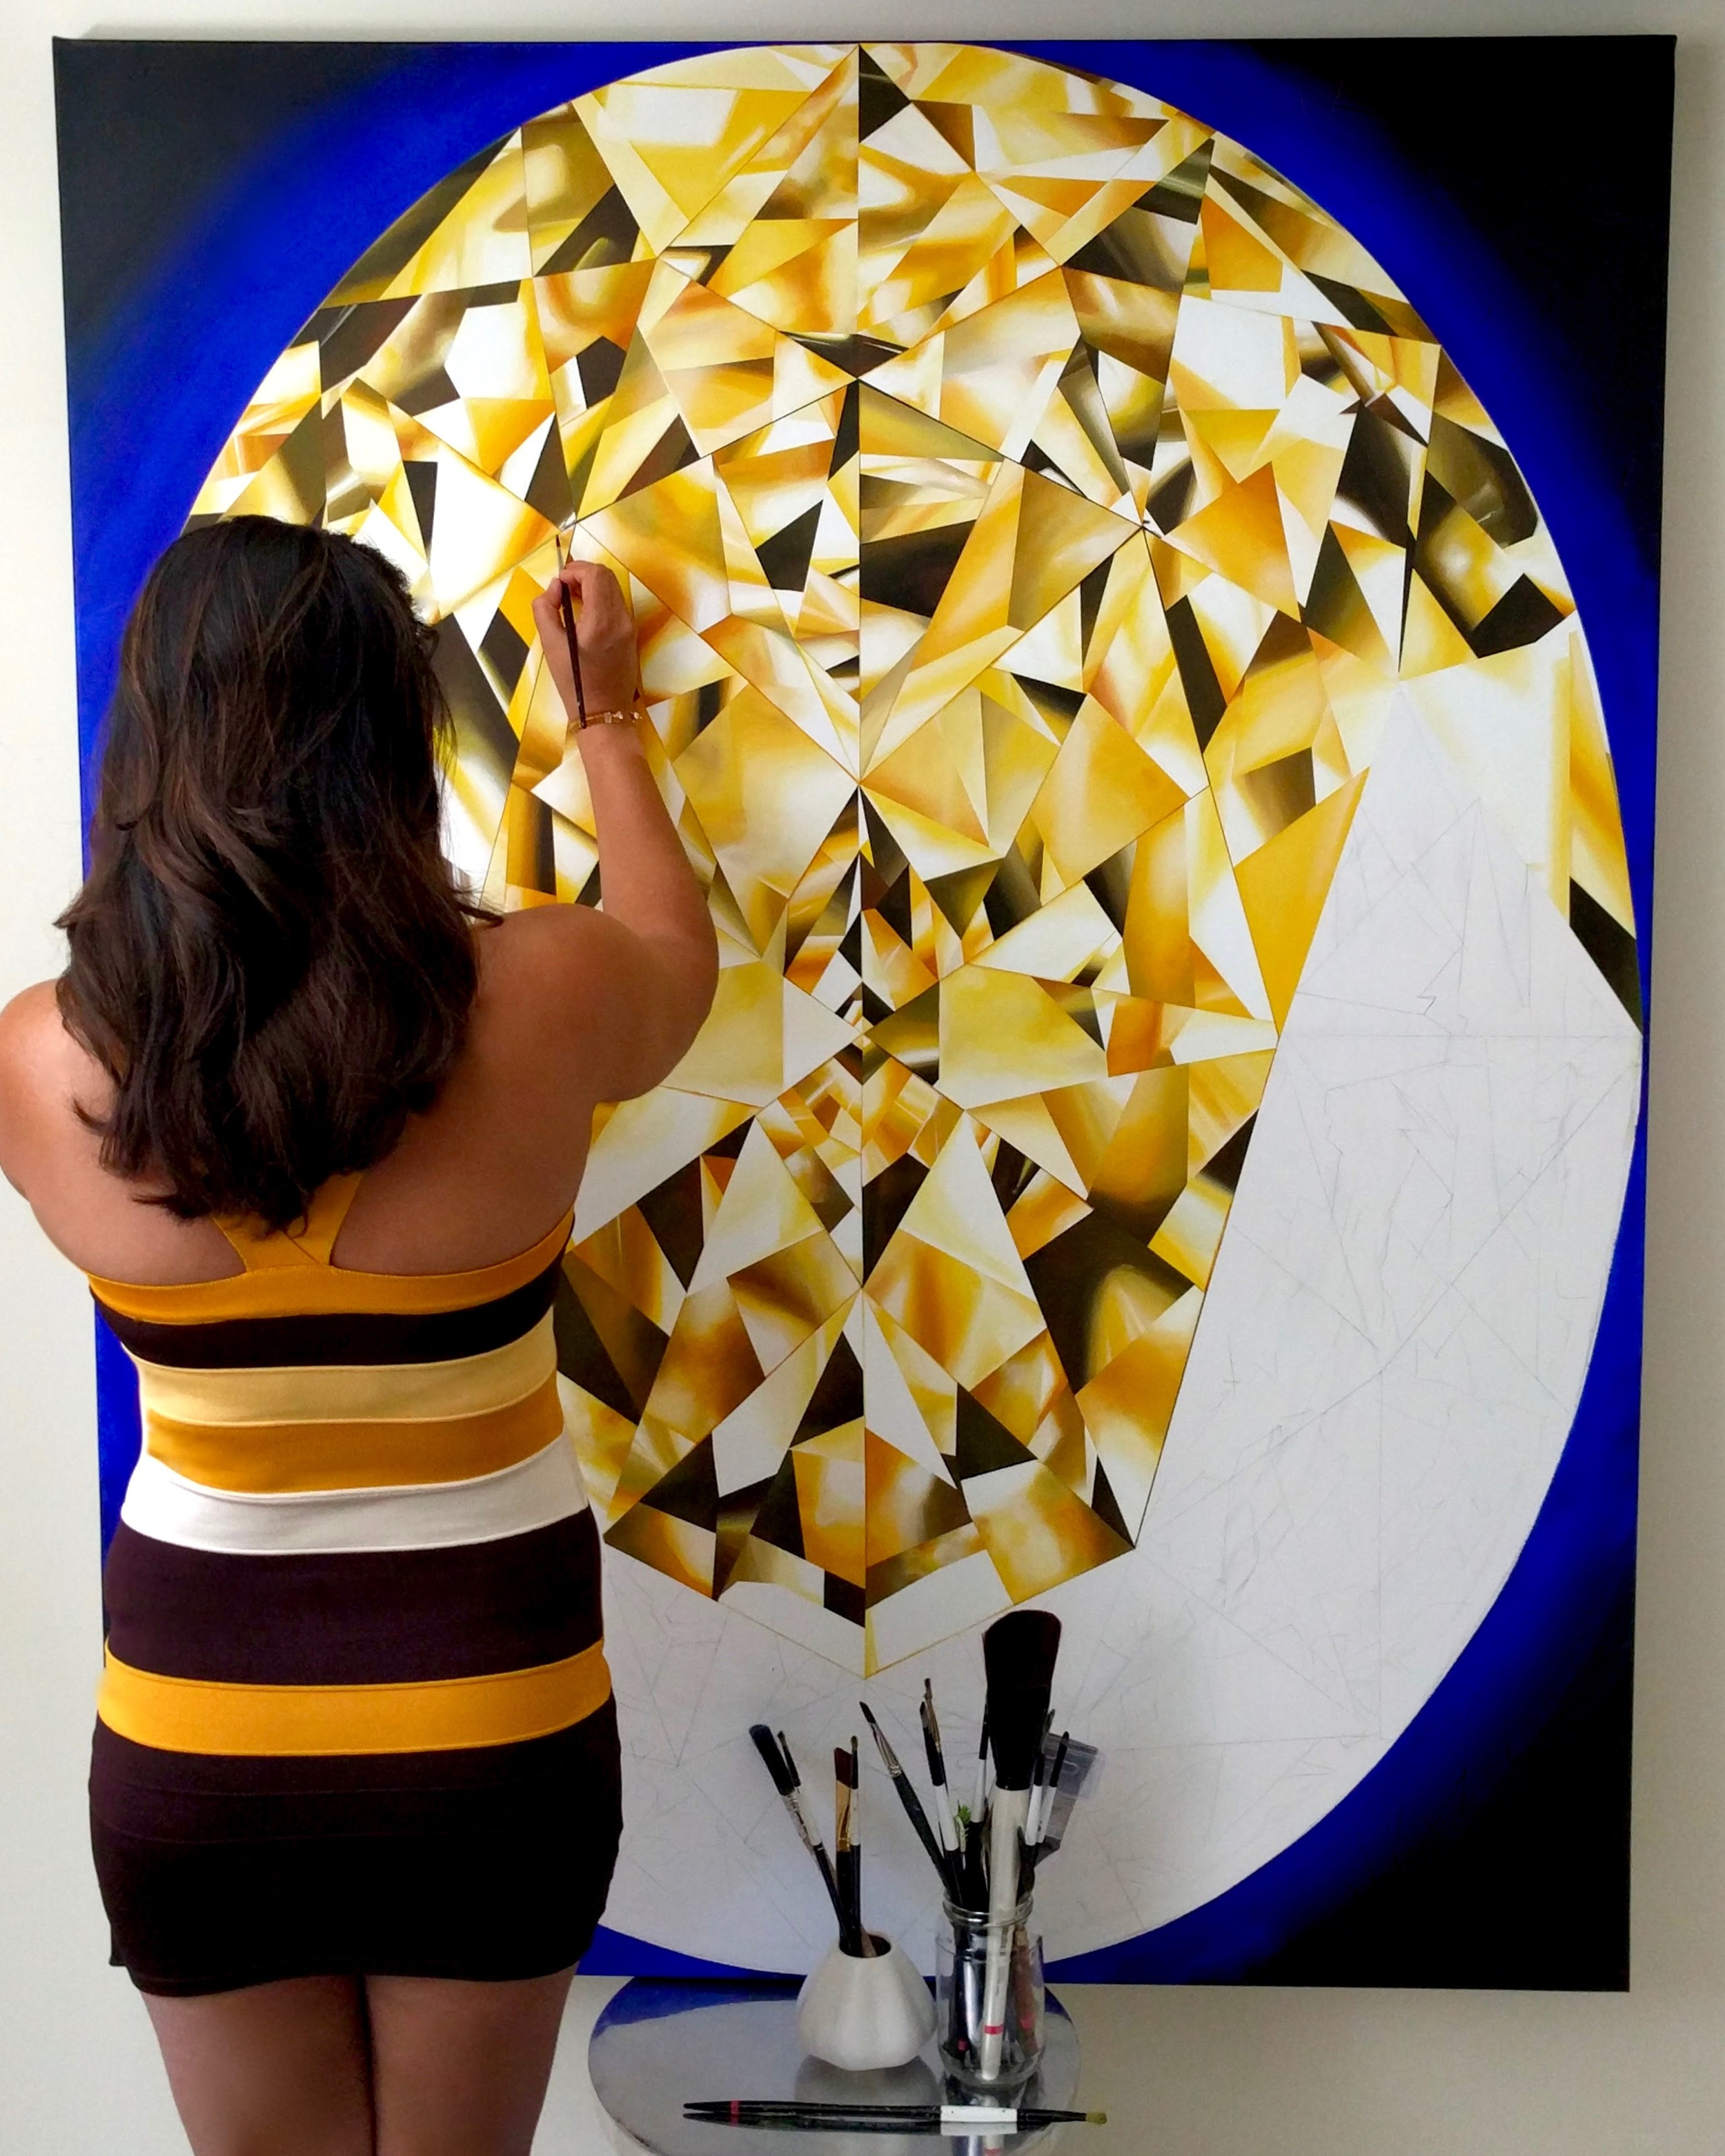 Taking my time basking in pure sunshine! This piece is detailed and had my complete love and attention. Made me so happy! Making of 'The Portrait of Luminosity' - Portrait of an Oval Cut Yellow Diamond. 60 x 48 inches. Acrylic on Canvas. ©Reena Ahluwalia